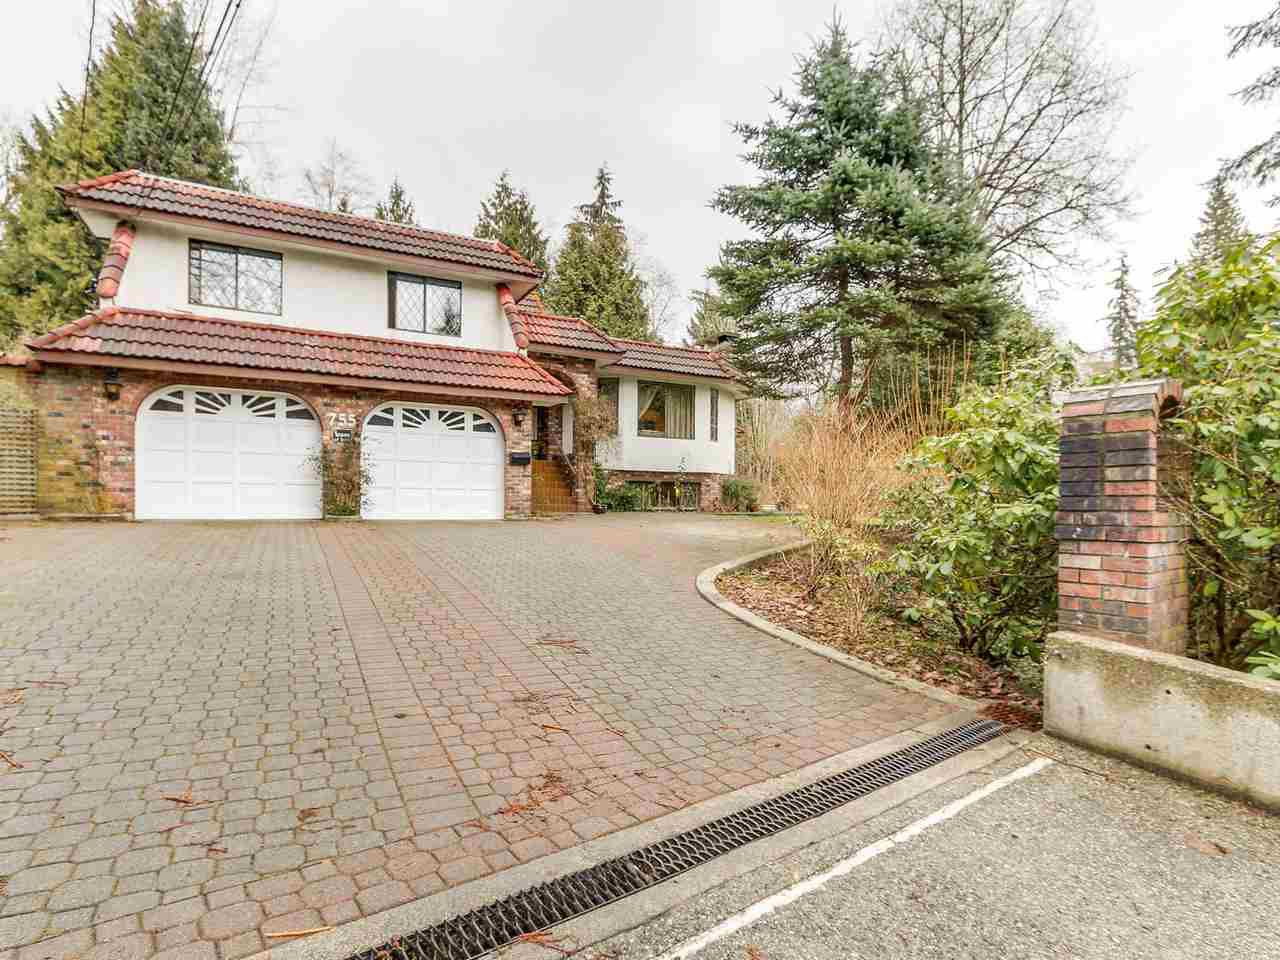 """Main Photo: 755 WESTCOT Road in West Vancouver: British Properties House for sale in """"British Properties"""" : MLS®# R2142347"""